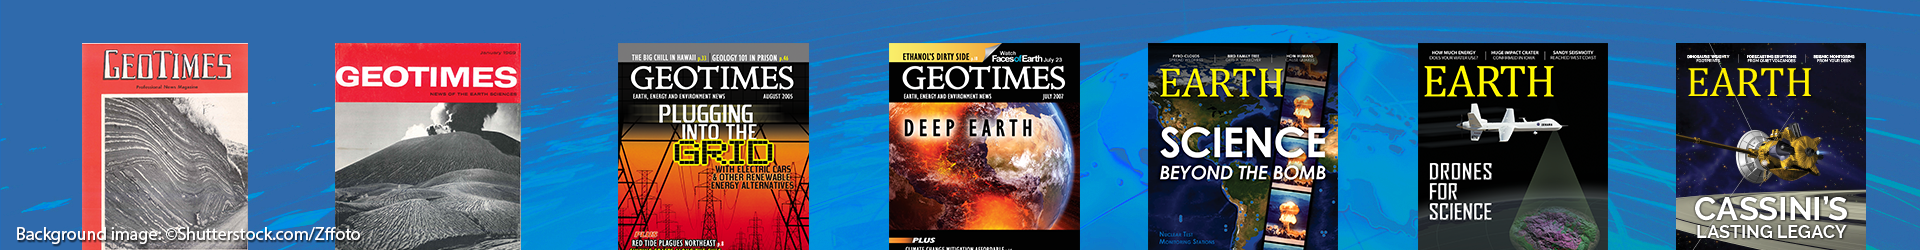 Geotimes and EARTH magazine covers